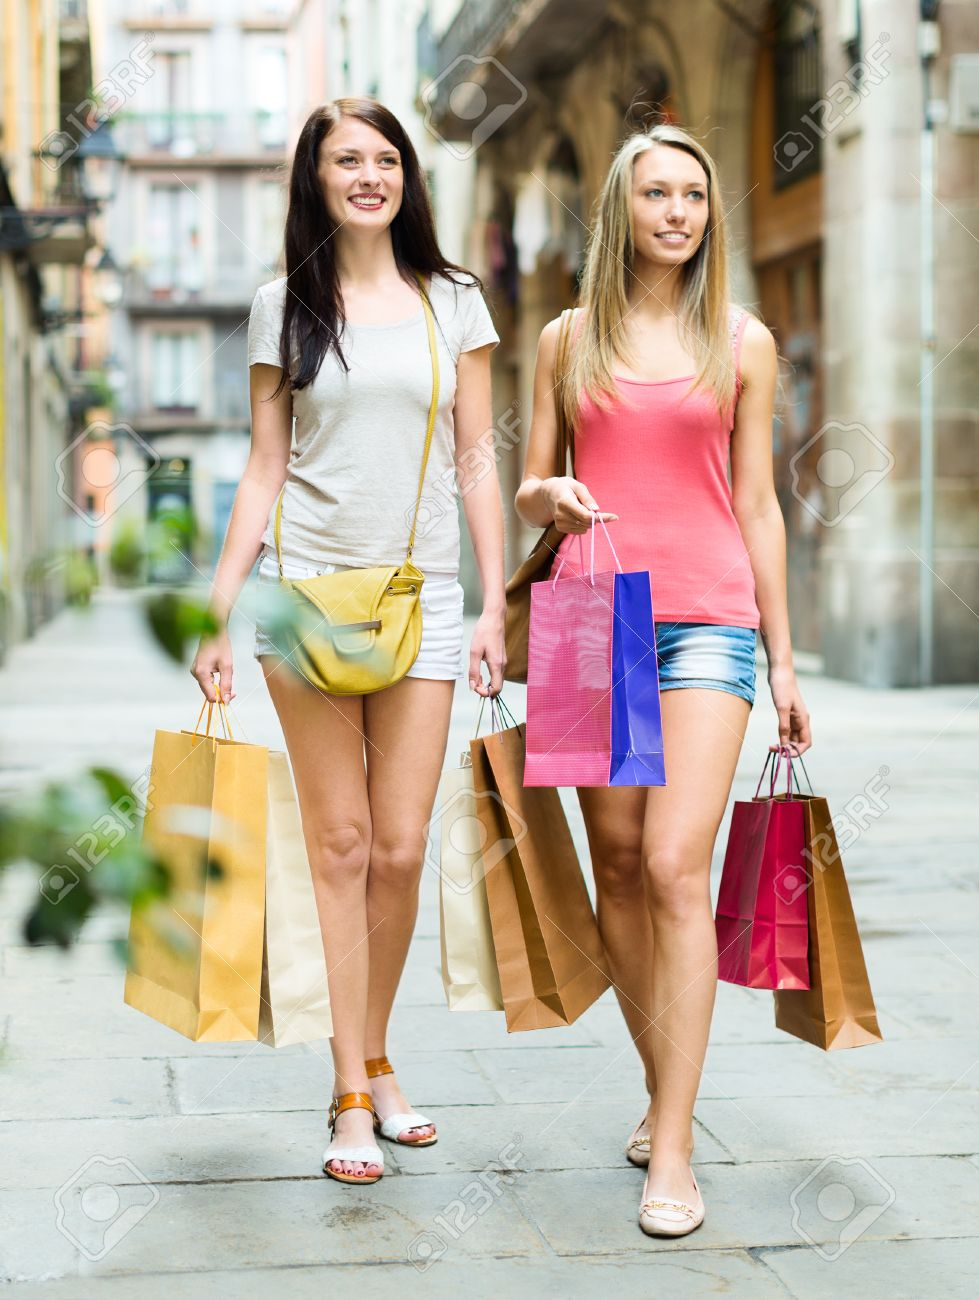 two nice girls with shopping bags walking on city street stock photo